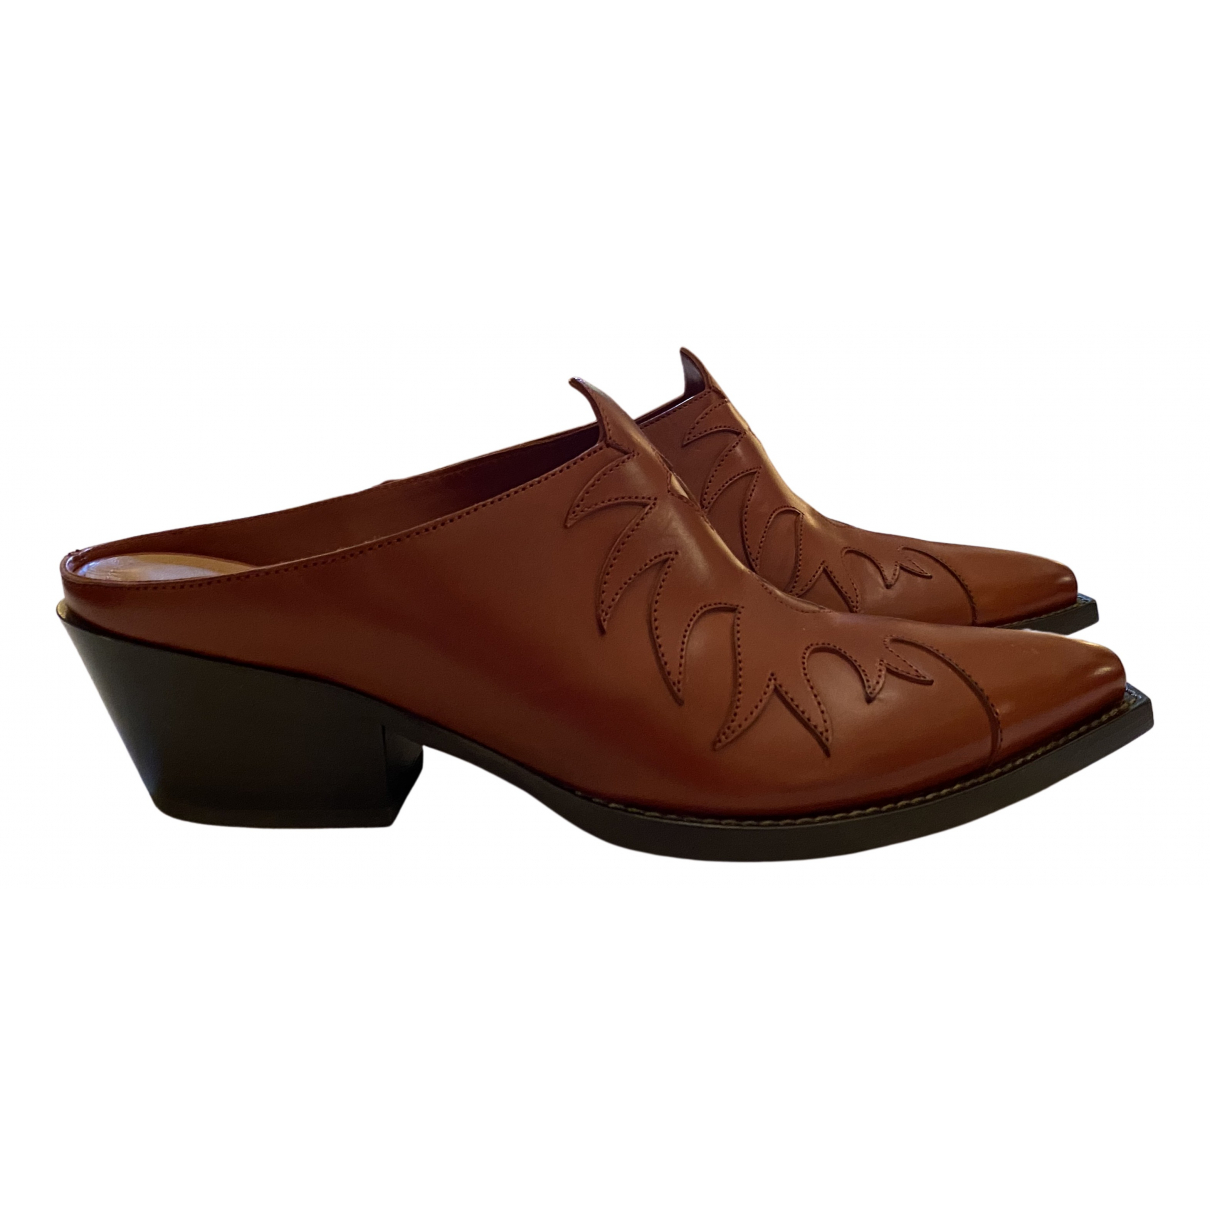 Sartore N Brown Leather Sandals for Women 38 EU